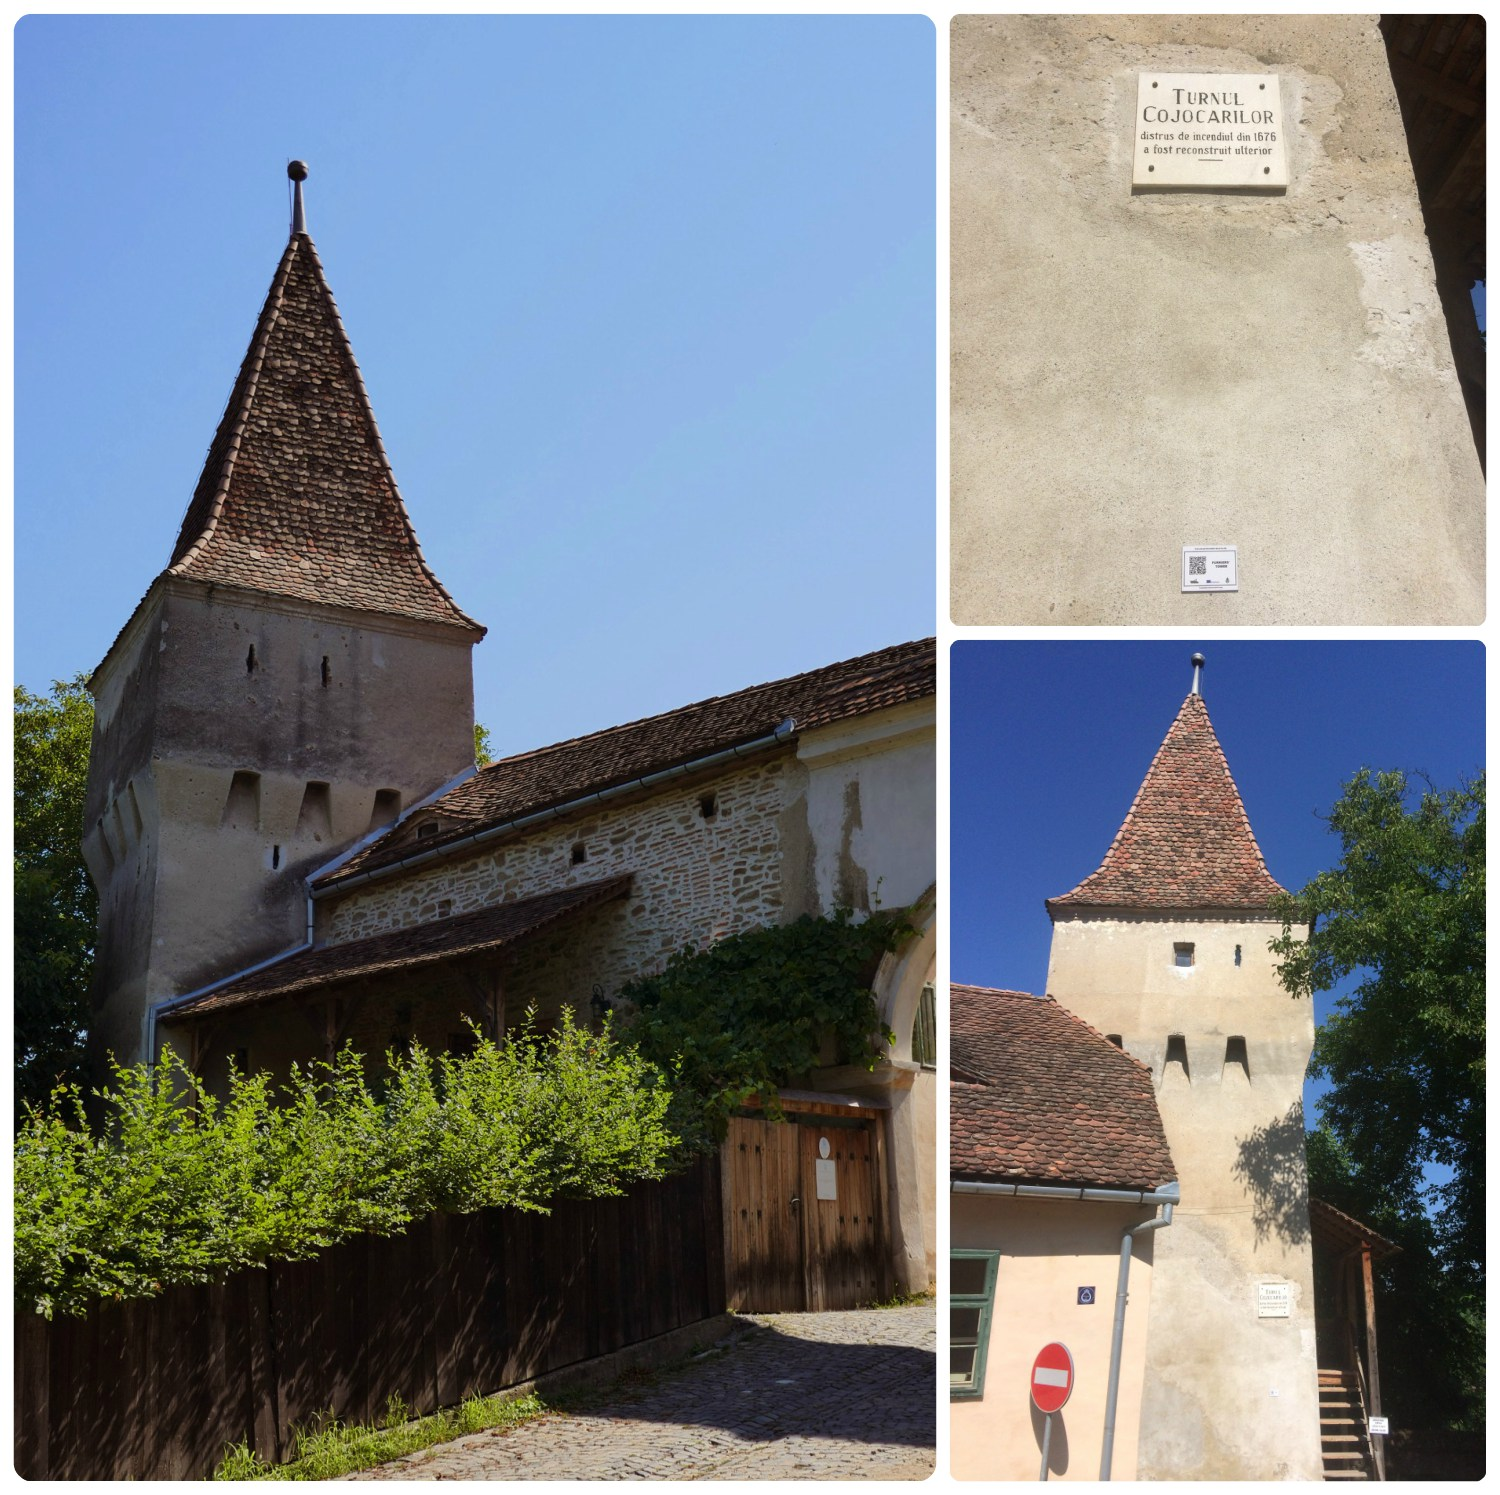 The Furriers' Tower stands adjacent to a gate into the Sighisoara Citadel.